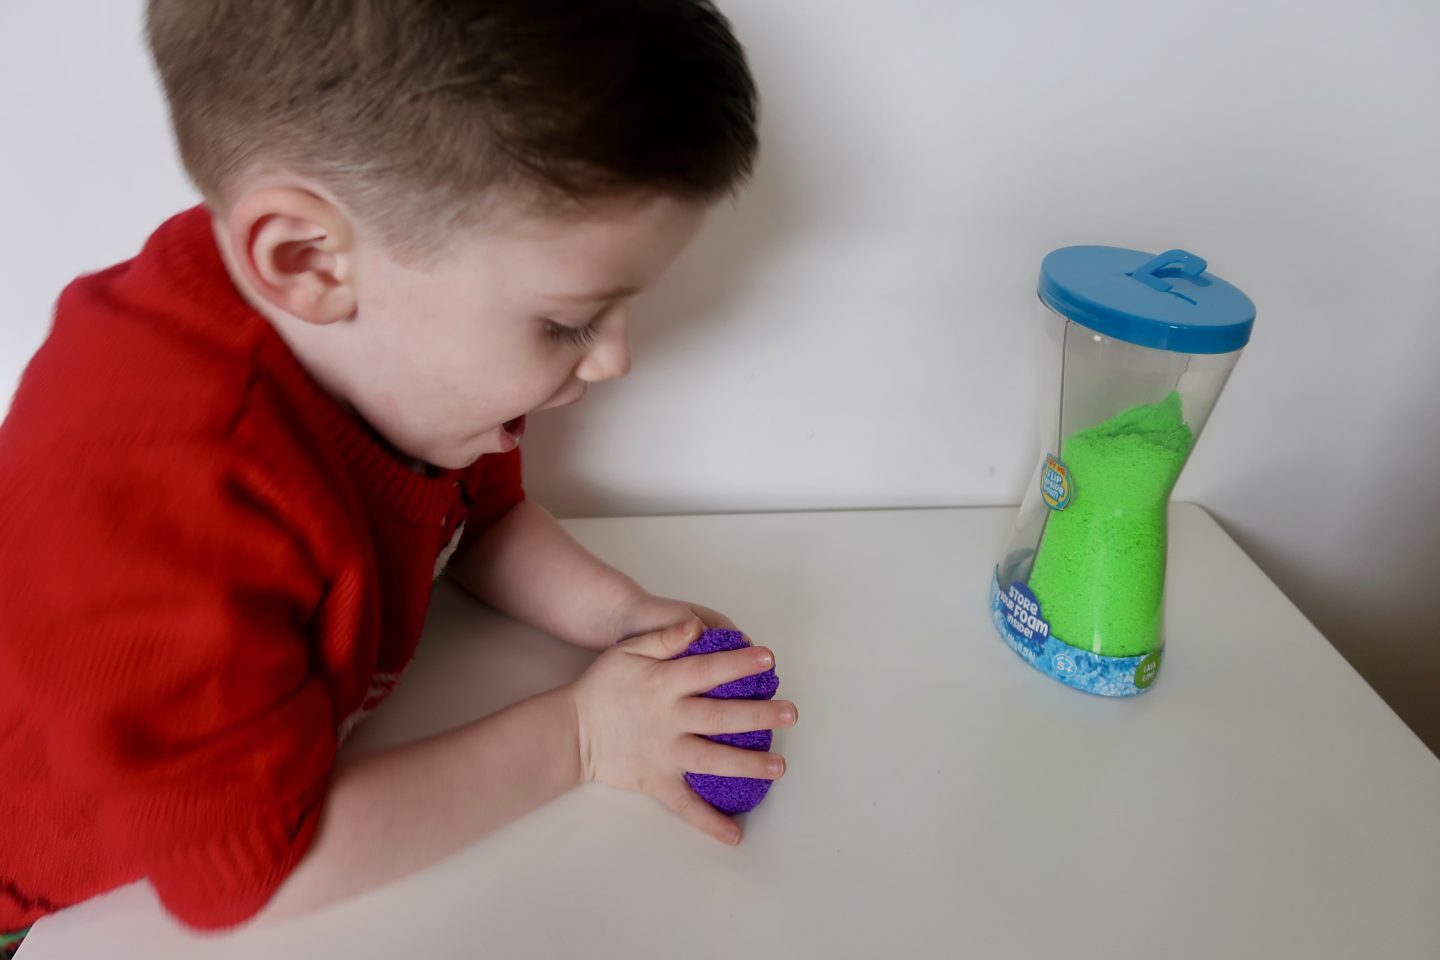 A boy in a red jumper playing with purple sensory foam